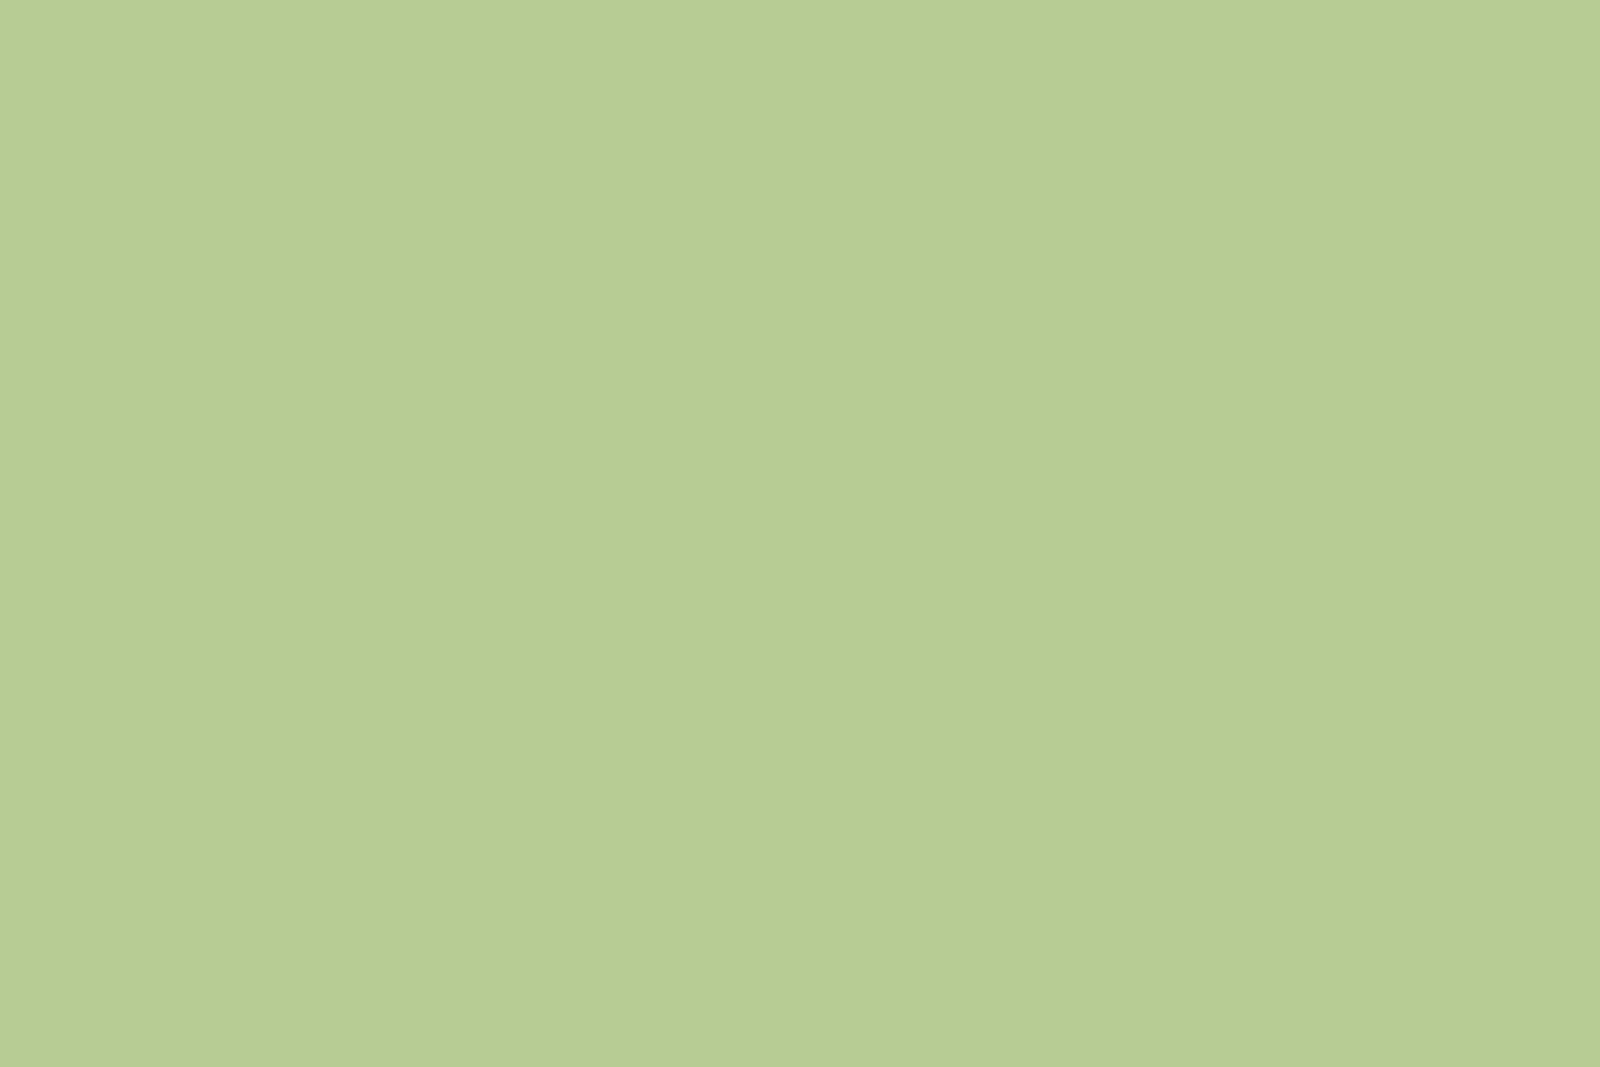 Sarah dawn designs fashion color trends meet the green - What colors go with sage ...